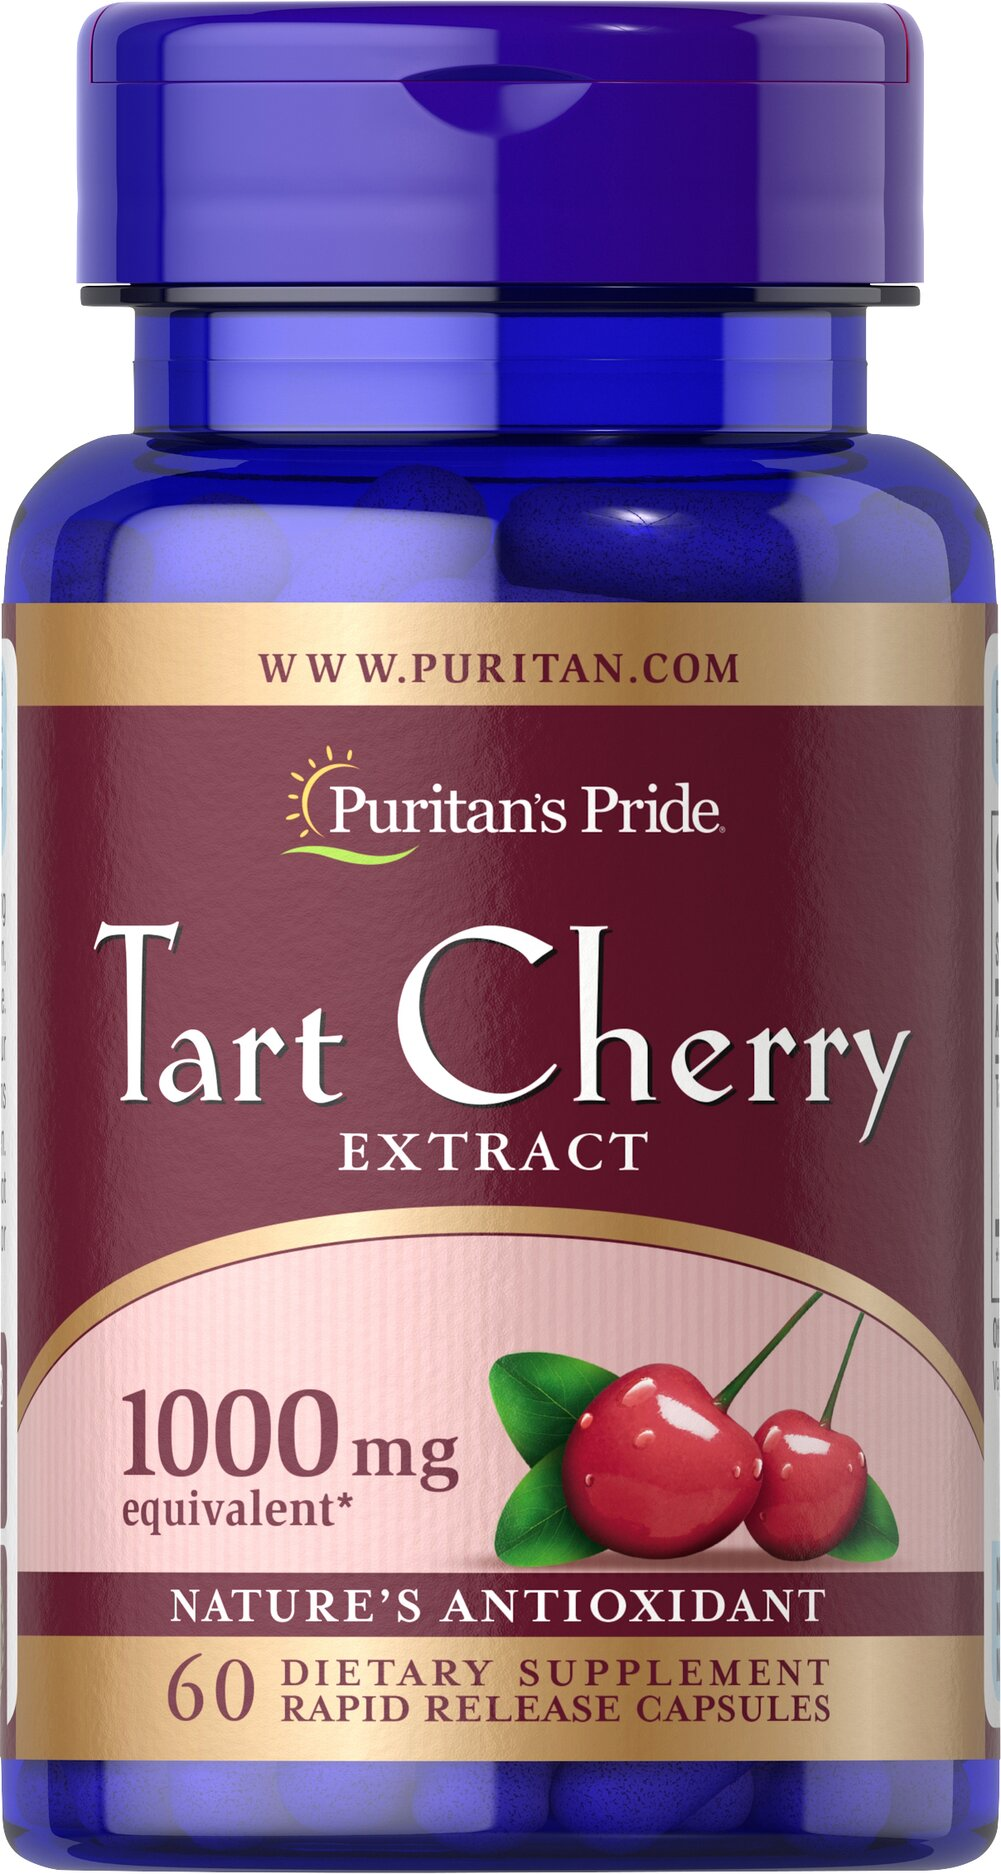 Tart Cherry Extract 1000 mg <p>Cherries are known for their natural content of antioxidants and other beneficial components. Now you can easily obtain the benefits of Tart Cherry in our convenient Tart Cherry capsules. Each serving contains a 4:1 extract of Tart Cherry to help retain the most important constituents.</p> 60 Capsules 1000 mg $16.79